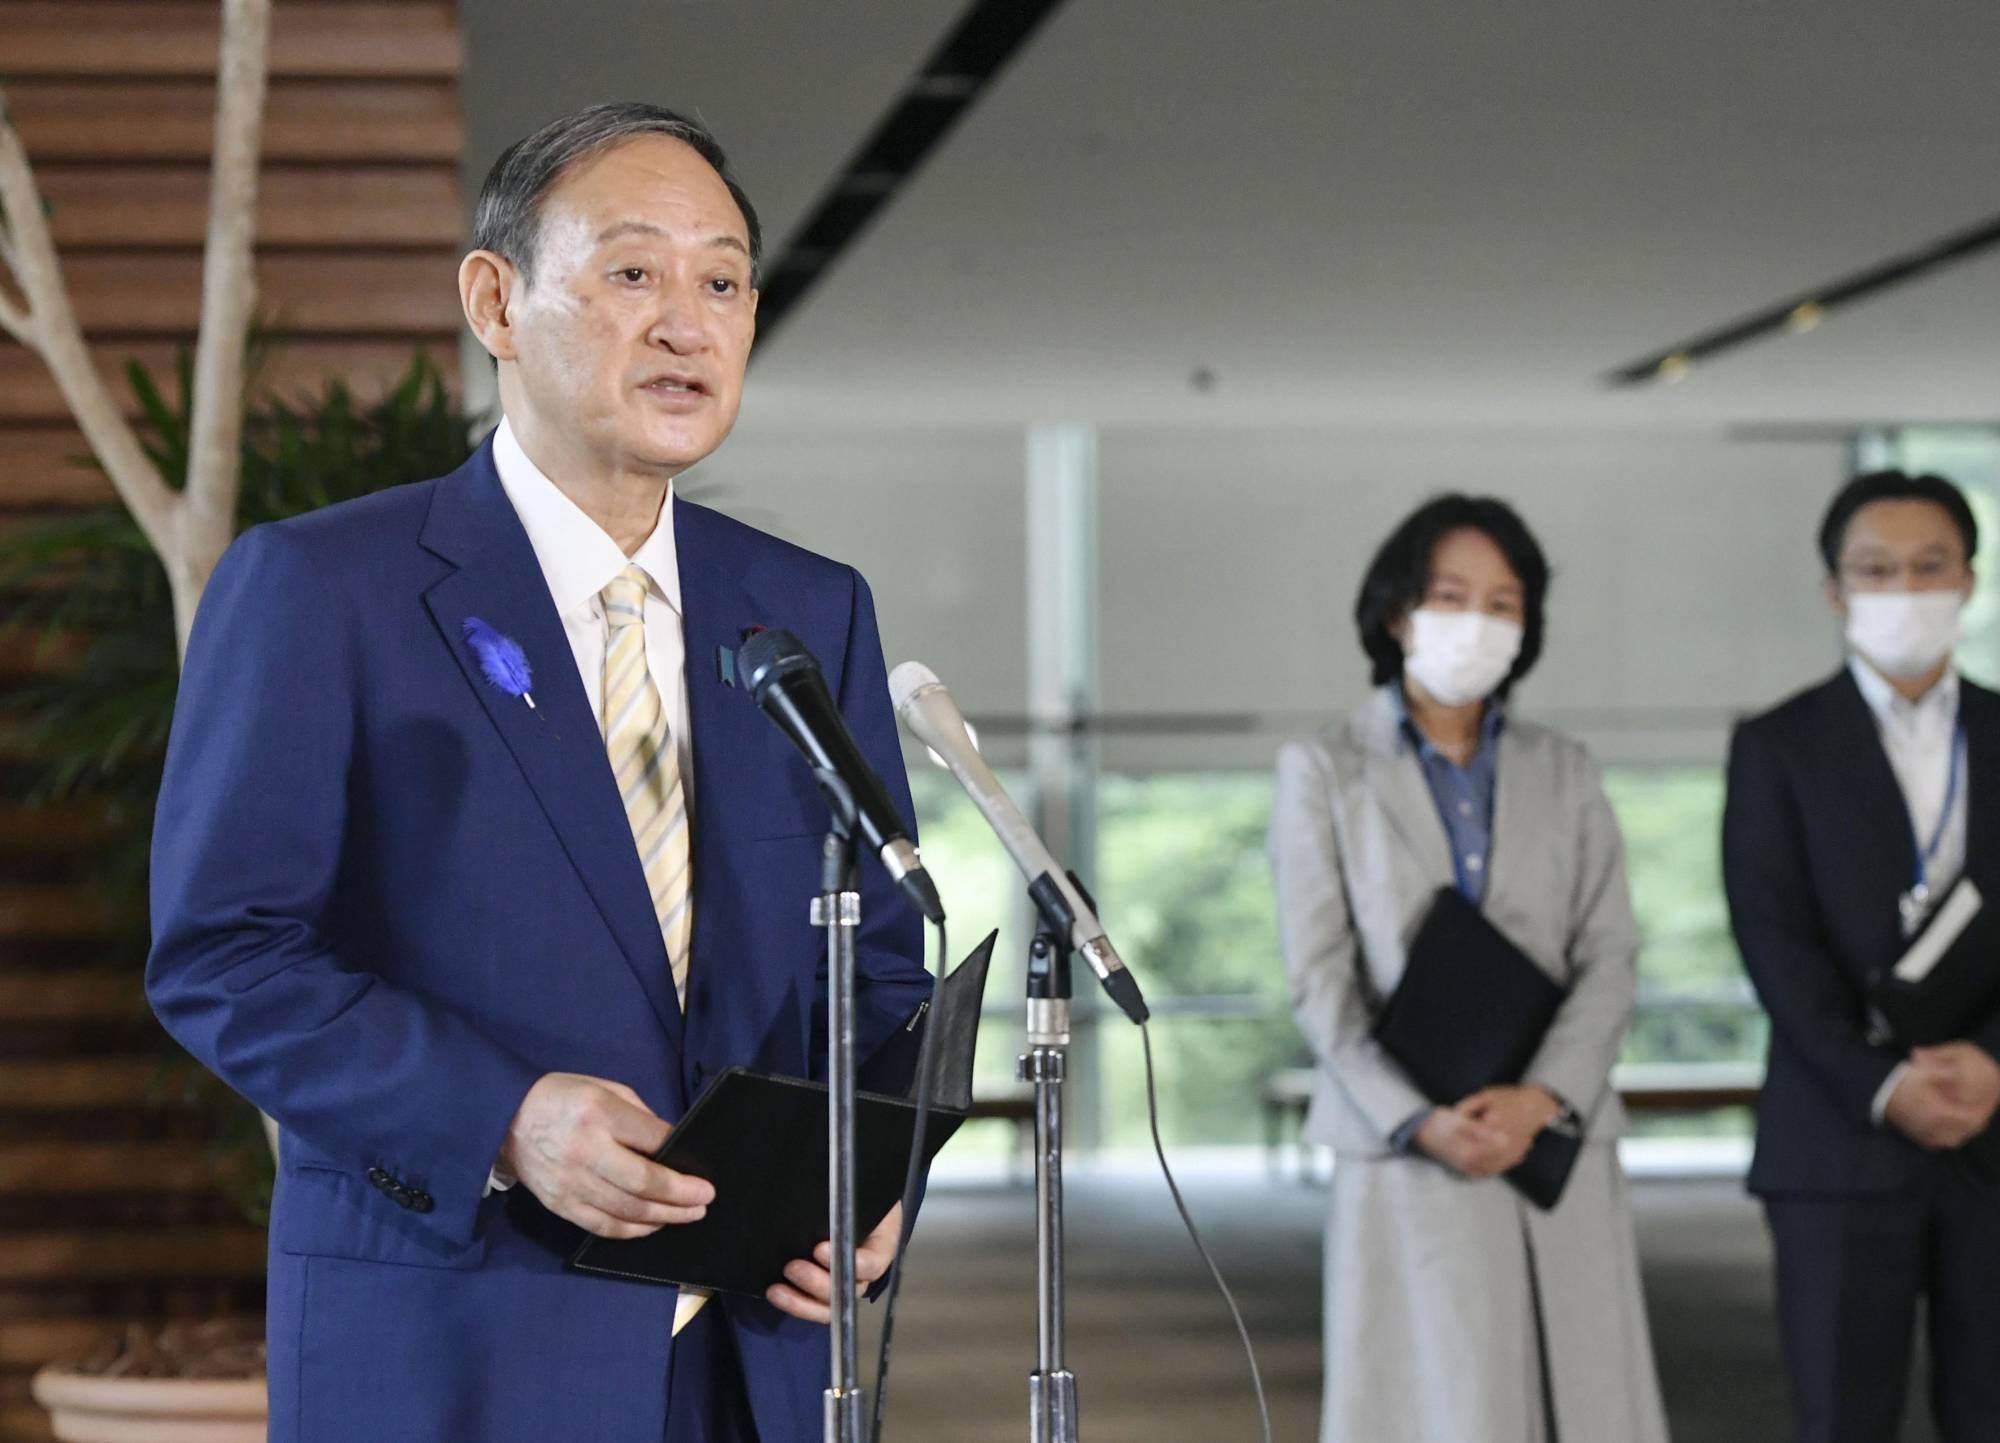 Prime Minister Yoshihide Suga speaks to reporters in Tokyo on Wednesday. | KYODO